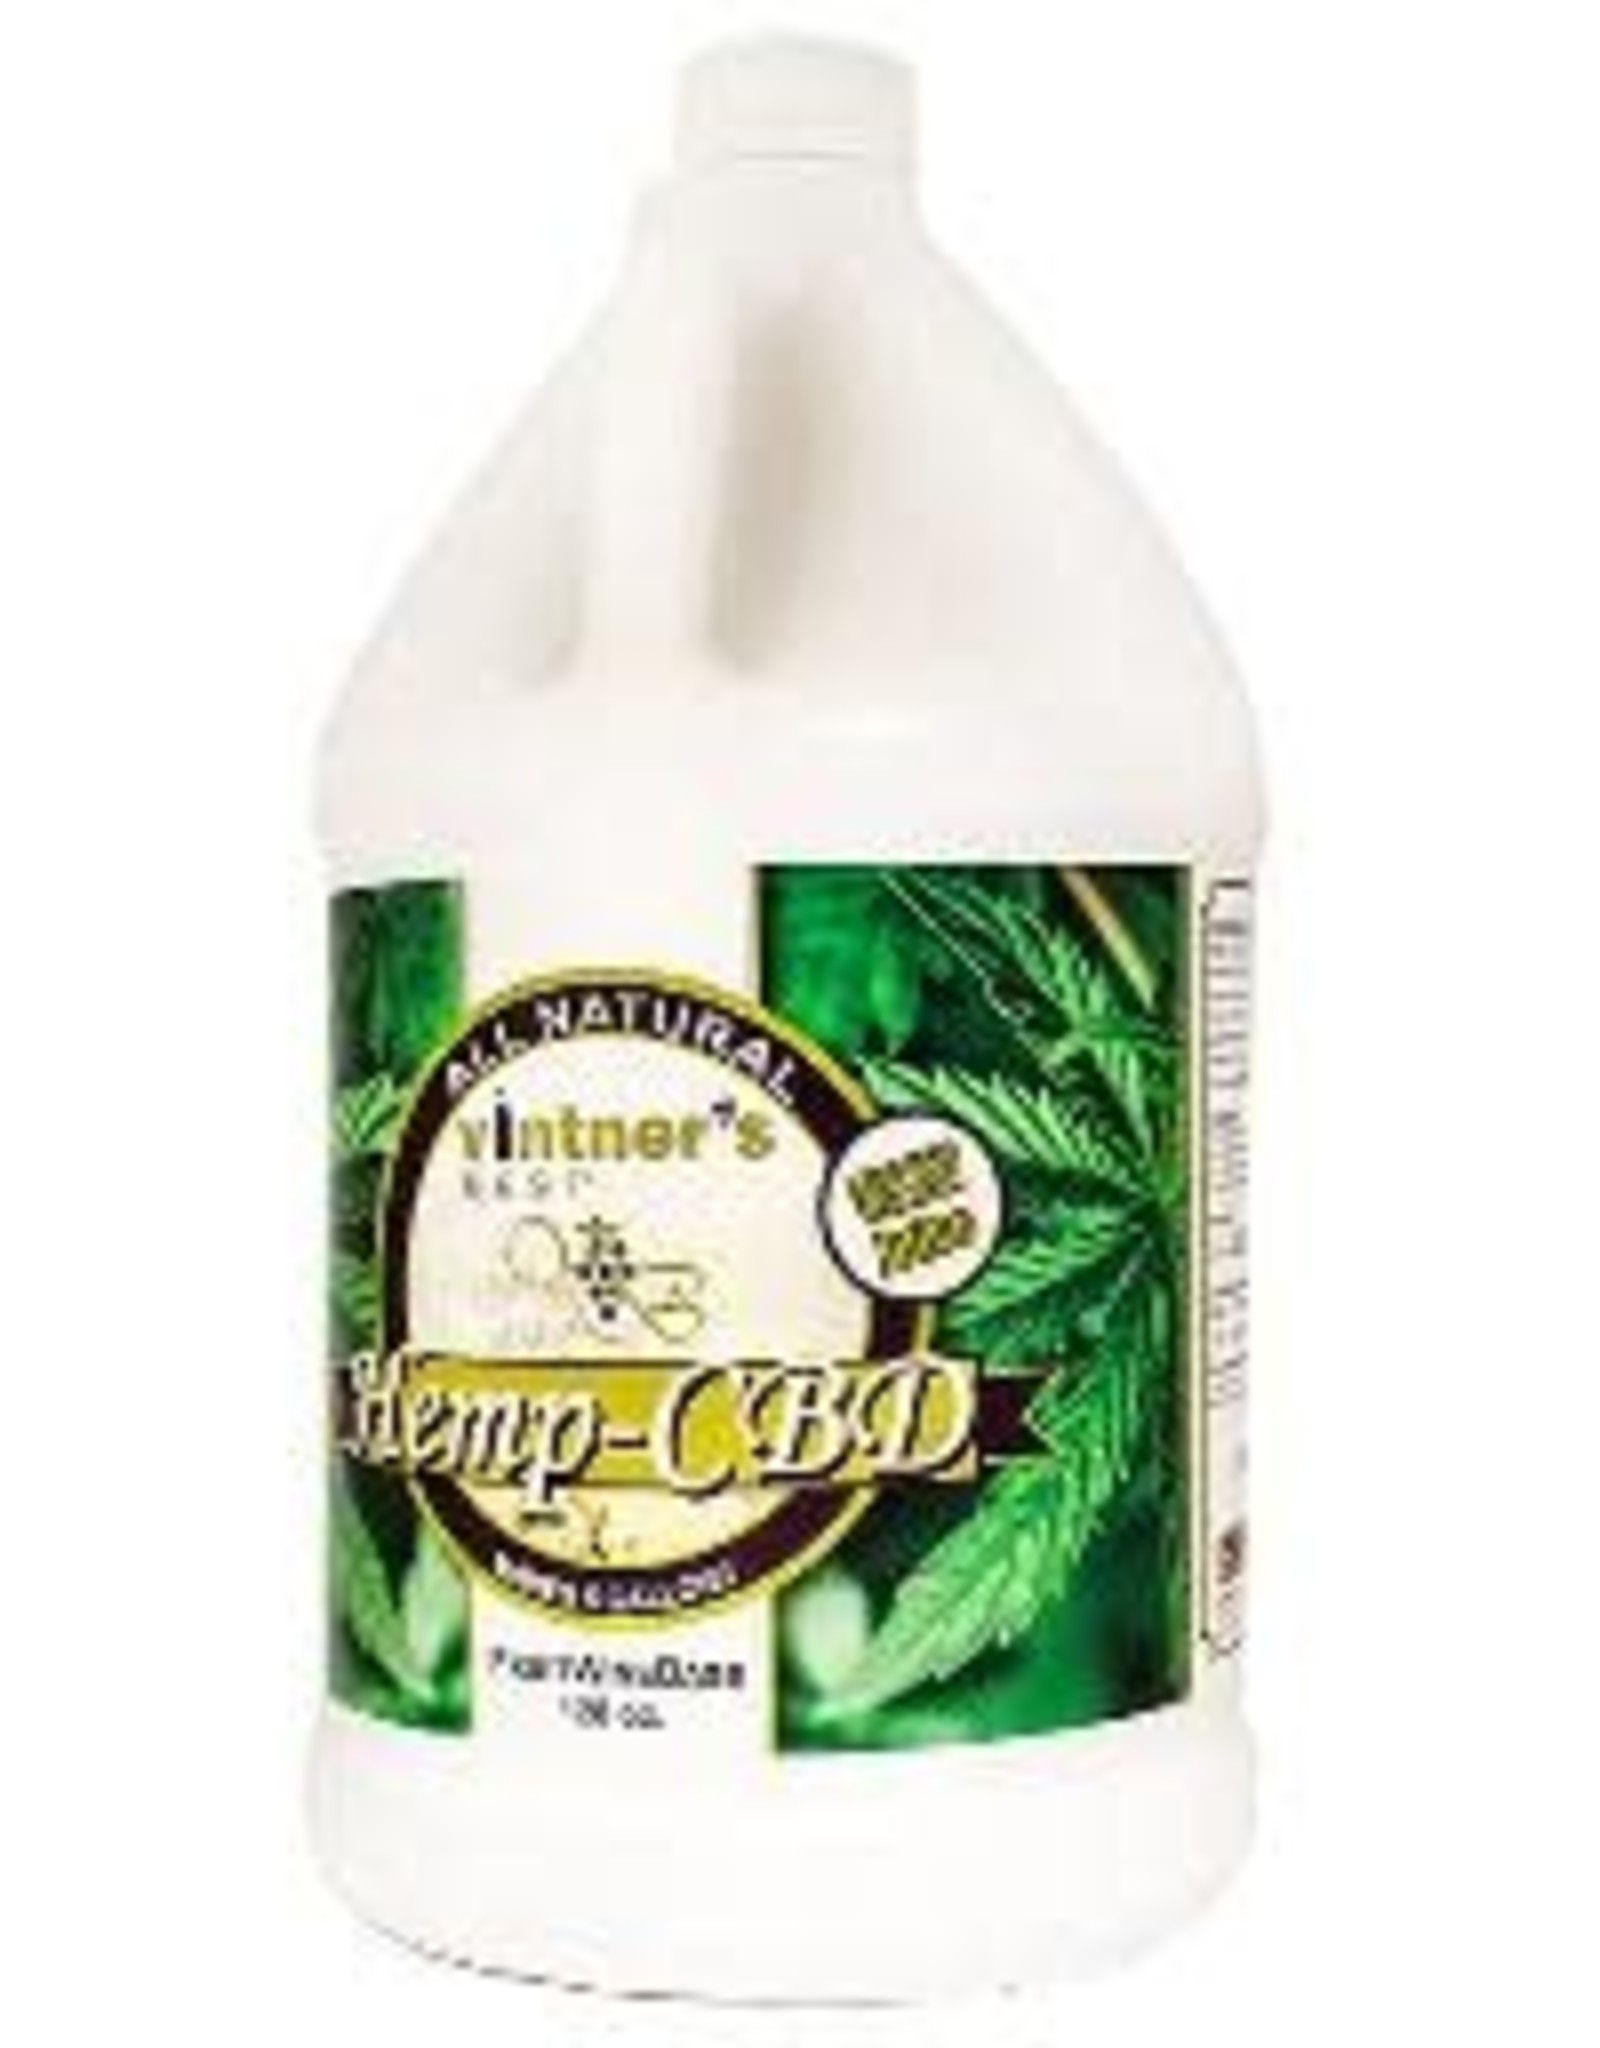 HEMP-CBD WINE BASE 128 OZ (1 GAL)